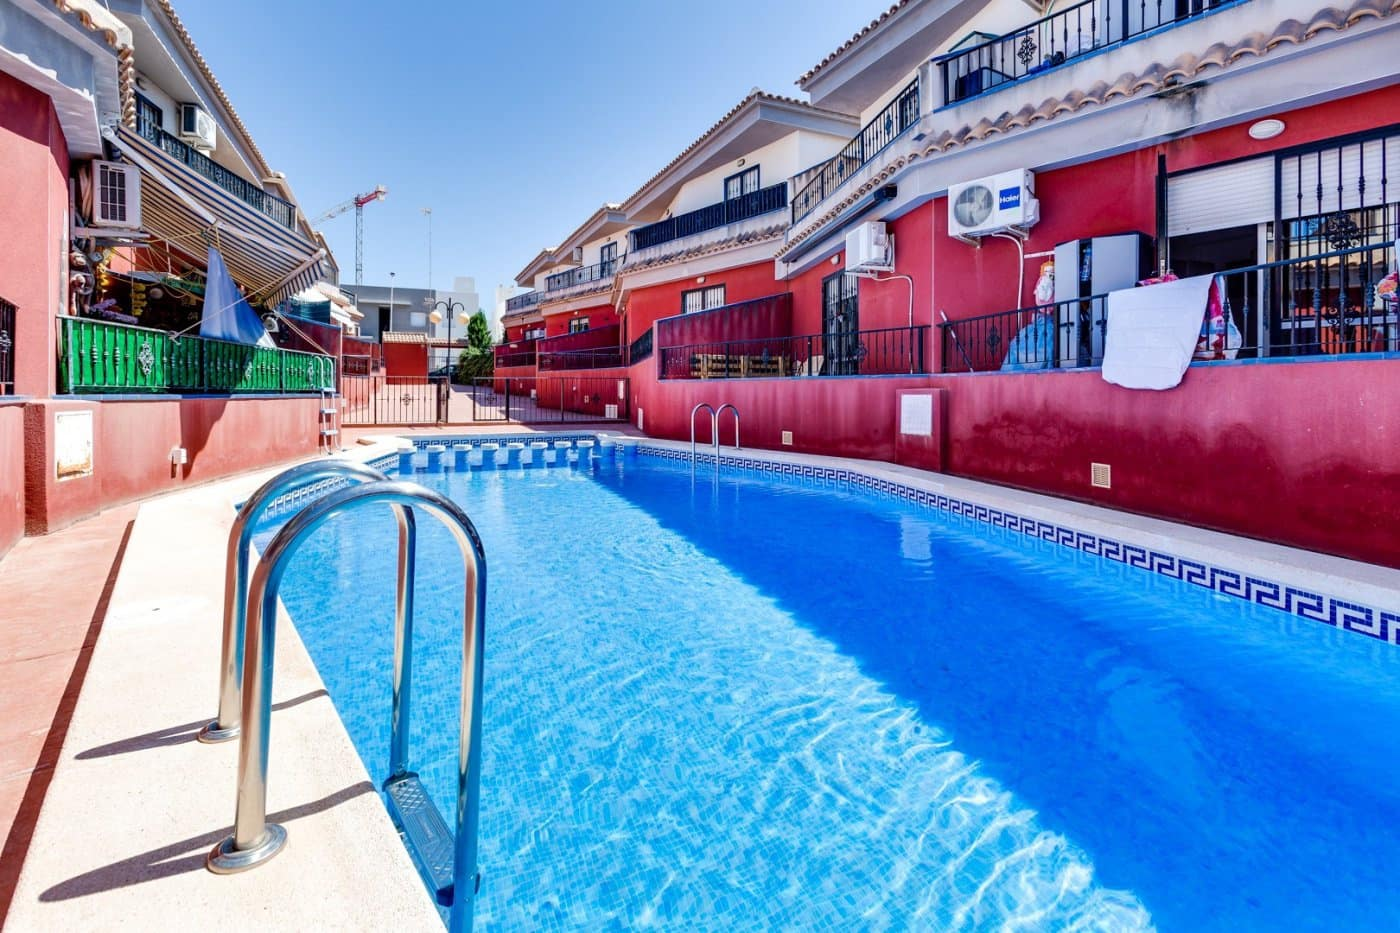 3 bedroom Terraced Villa for holiday rental in Torrevieja with pool - € 600 (Ref: 3821203)